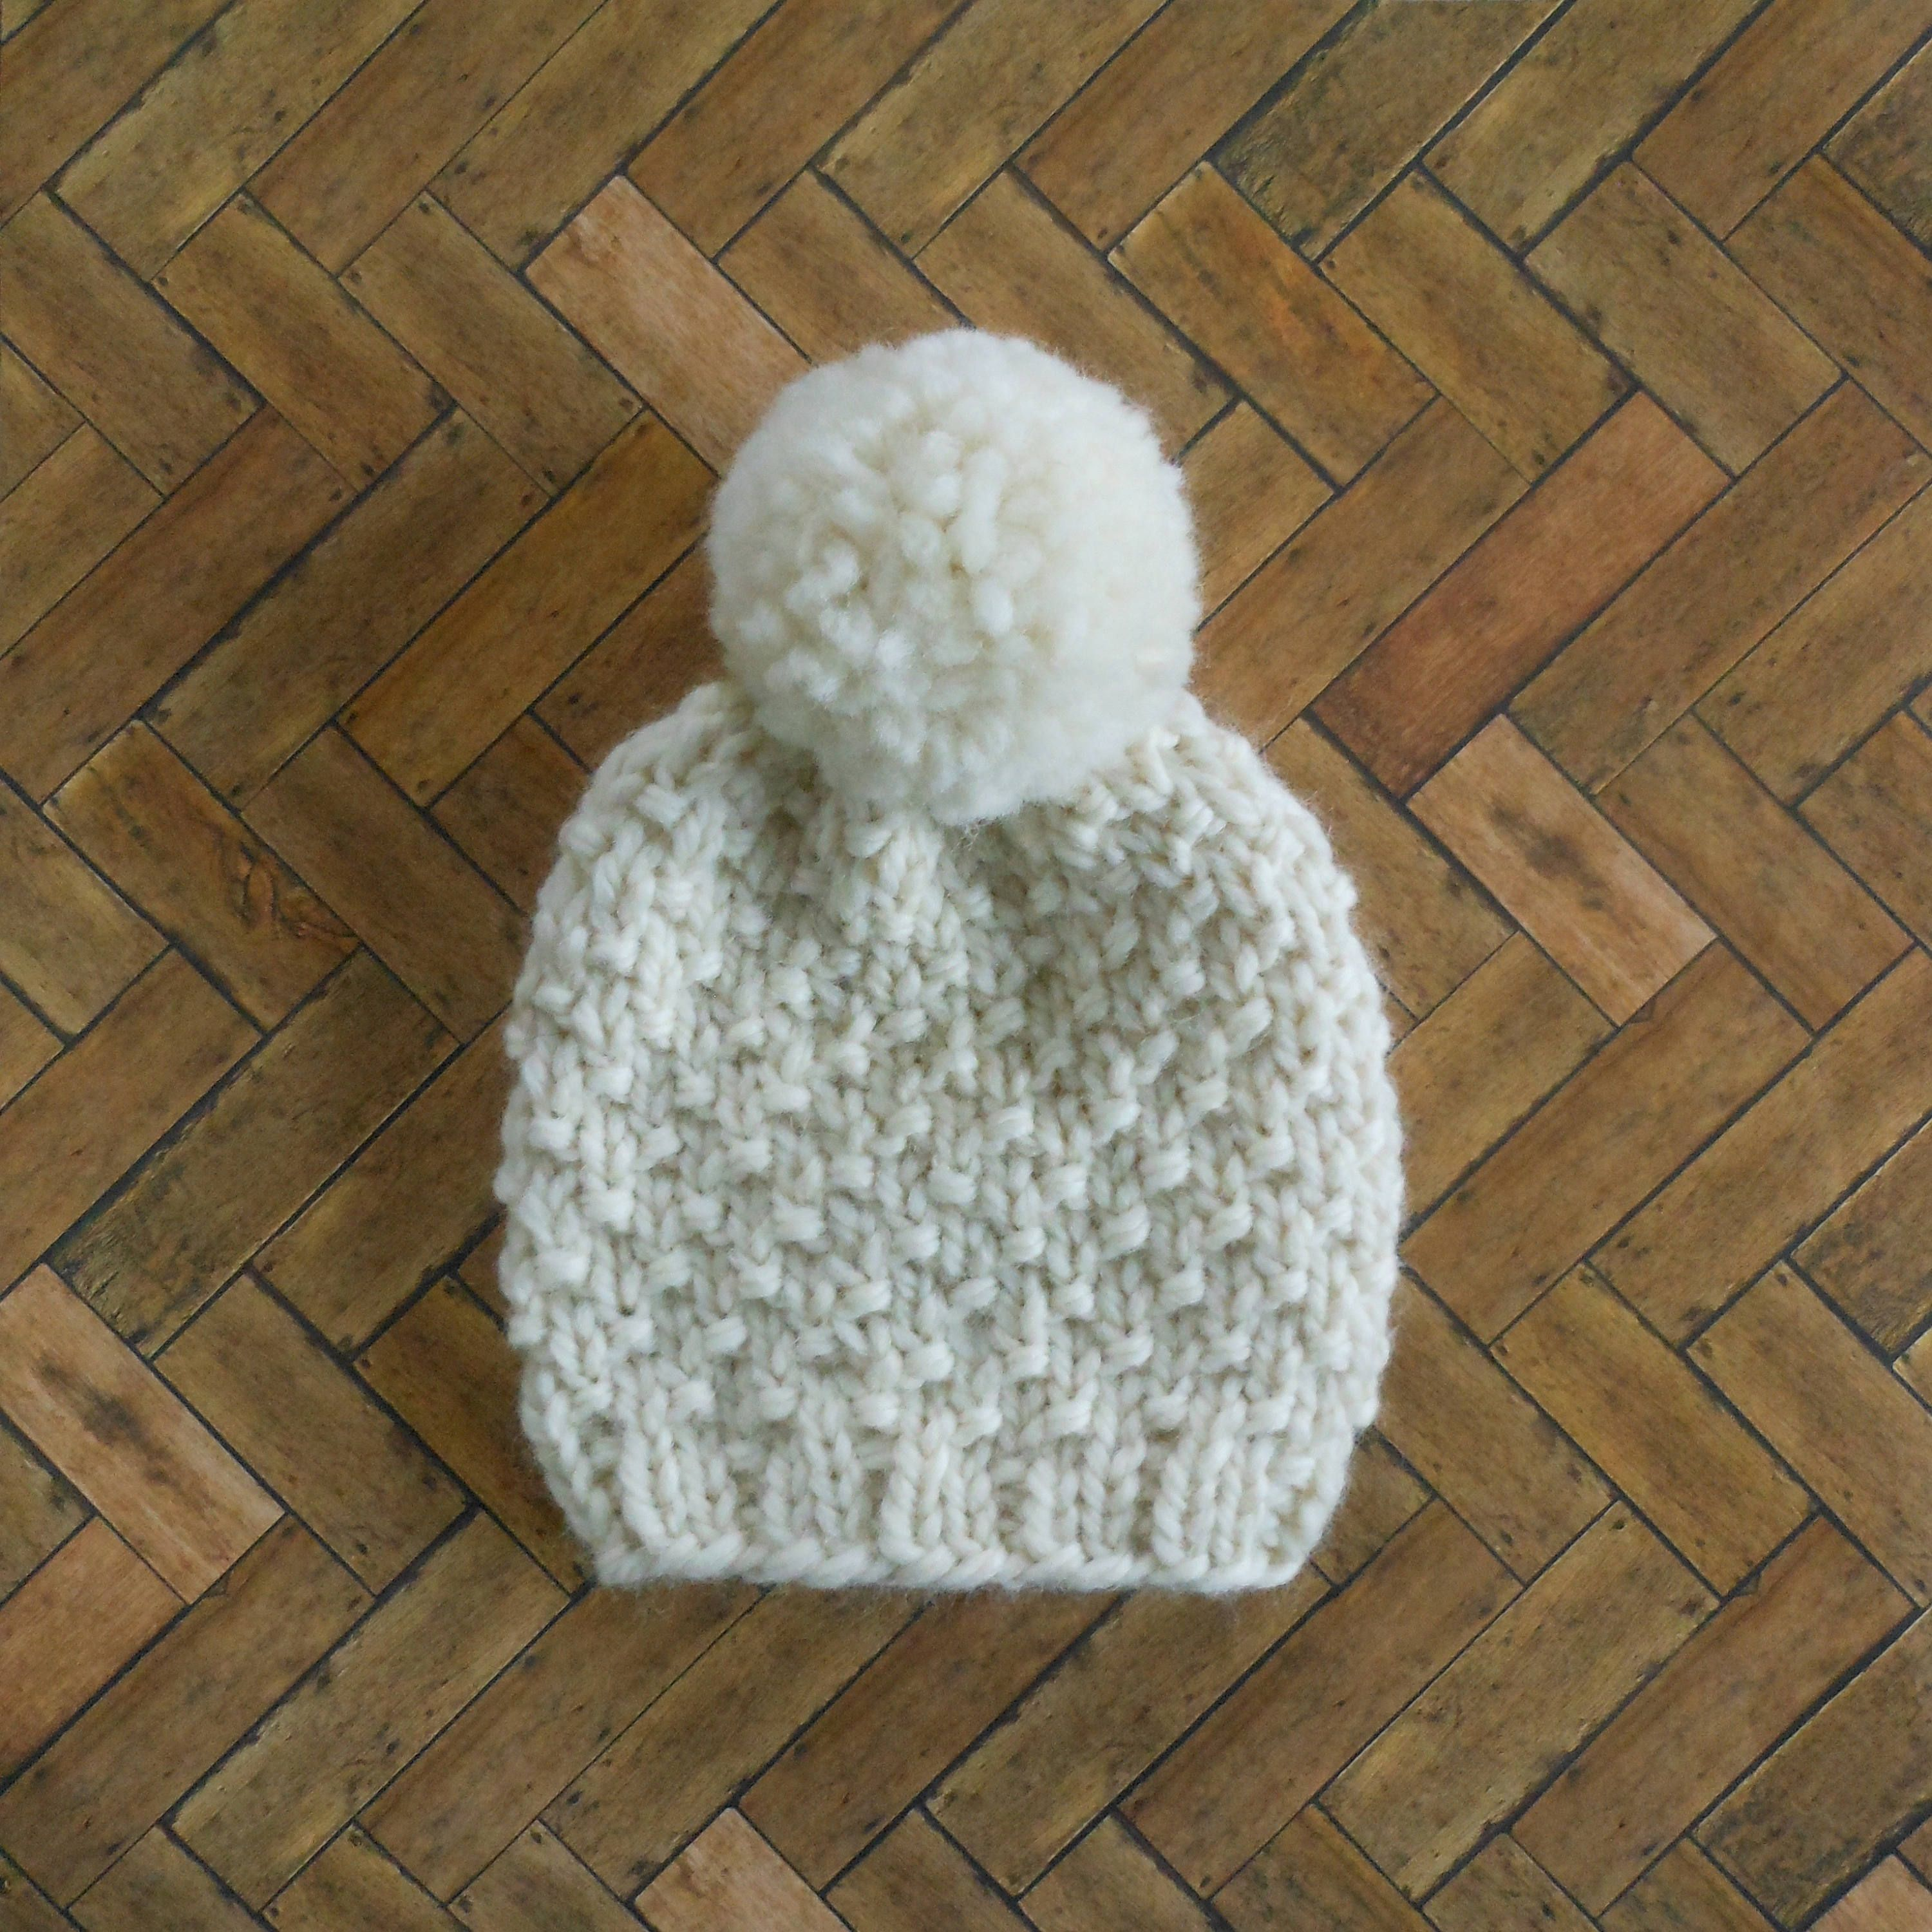 b0dc7e9faed coupon code for knit baby pom pom beanie soft wool infant hat 0 to 3 months